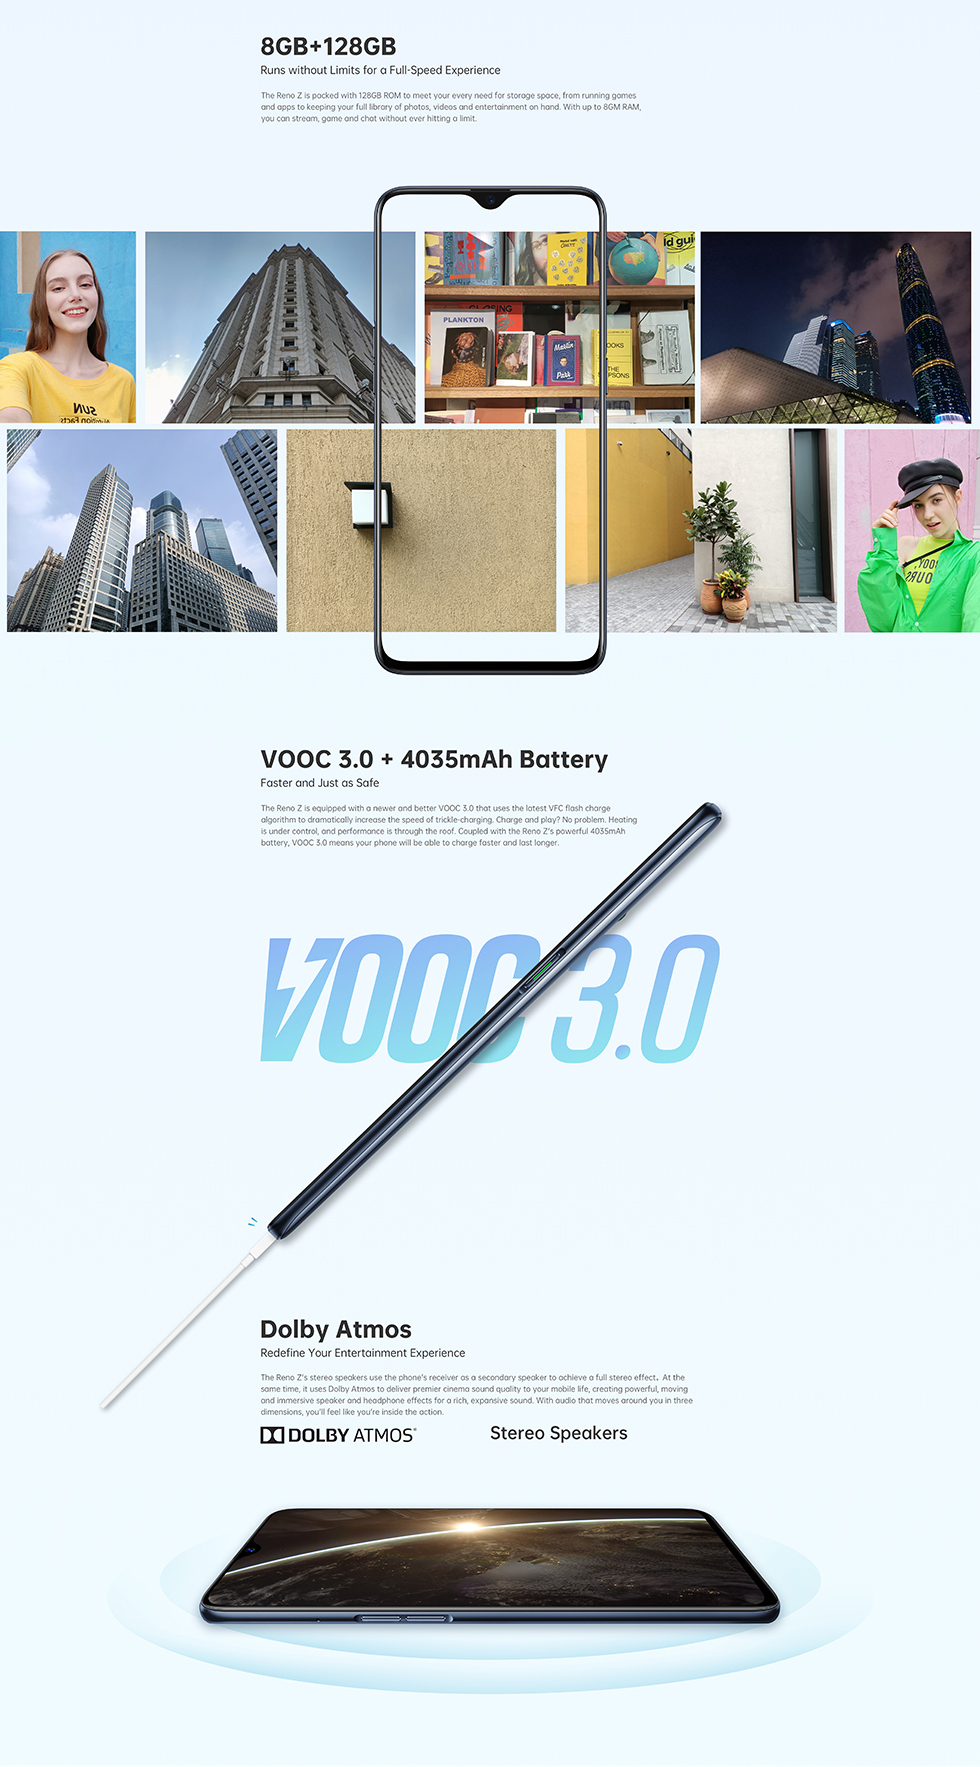 OPPO Reno Z - 48MP + 32MP Camera 4035mAh + VOOC 3 0 8GB + 128GB